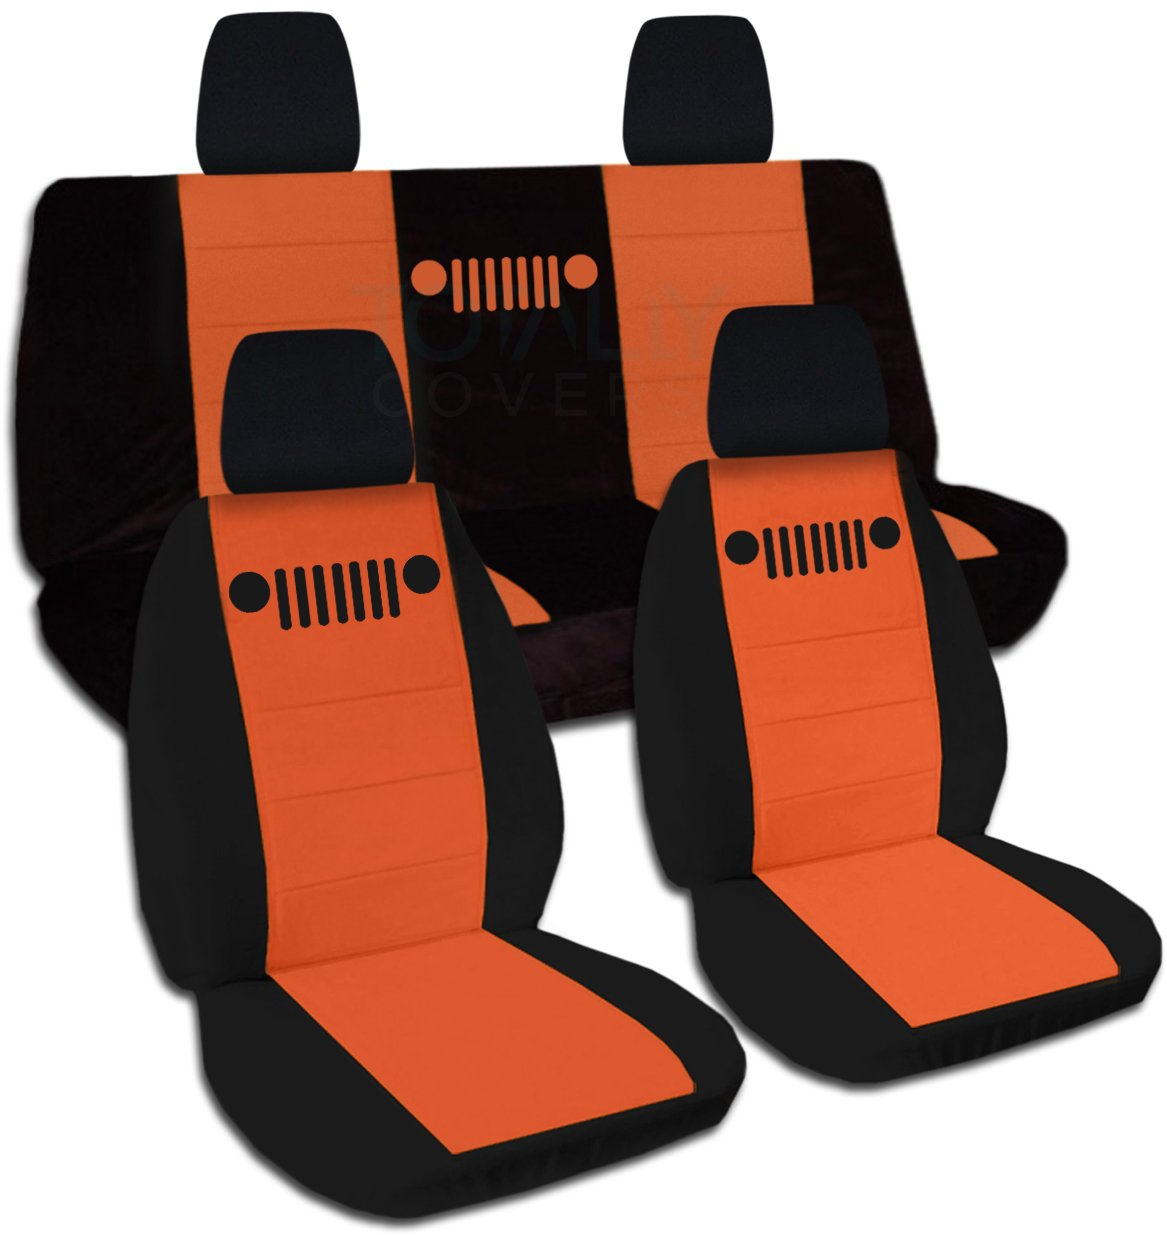 Totally Covers Fits 2018-2019 Jeep Wrangler JL Two-Tone Seat Covers: Black & Orange - Full Set: Front & Rear (21 Colors) 2-Door/4-Door Solid/Split Bench Back w/wo Armrest/Headrest